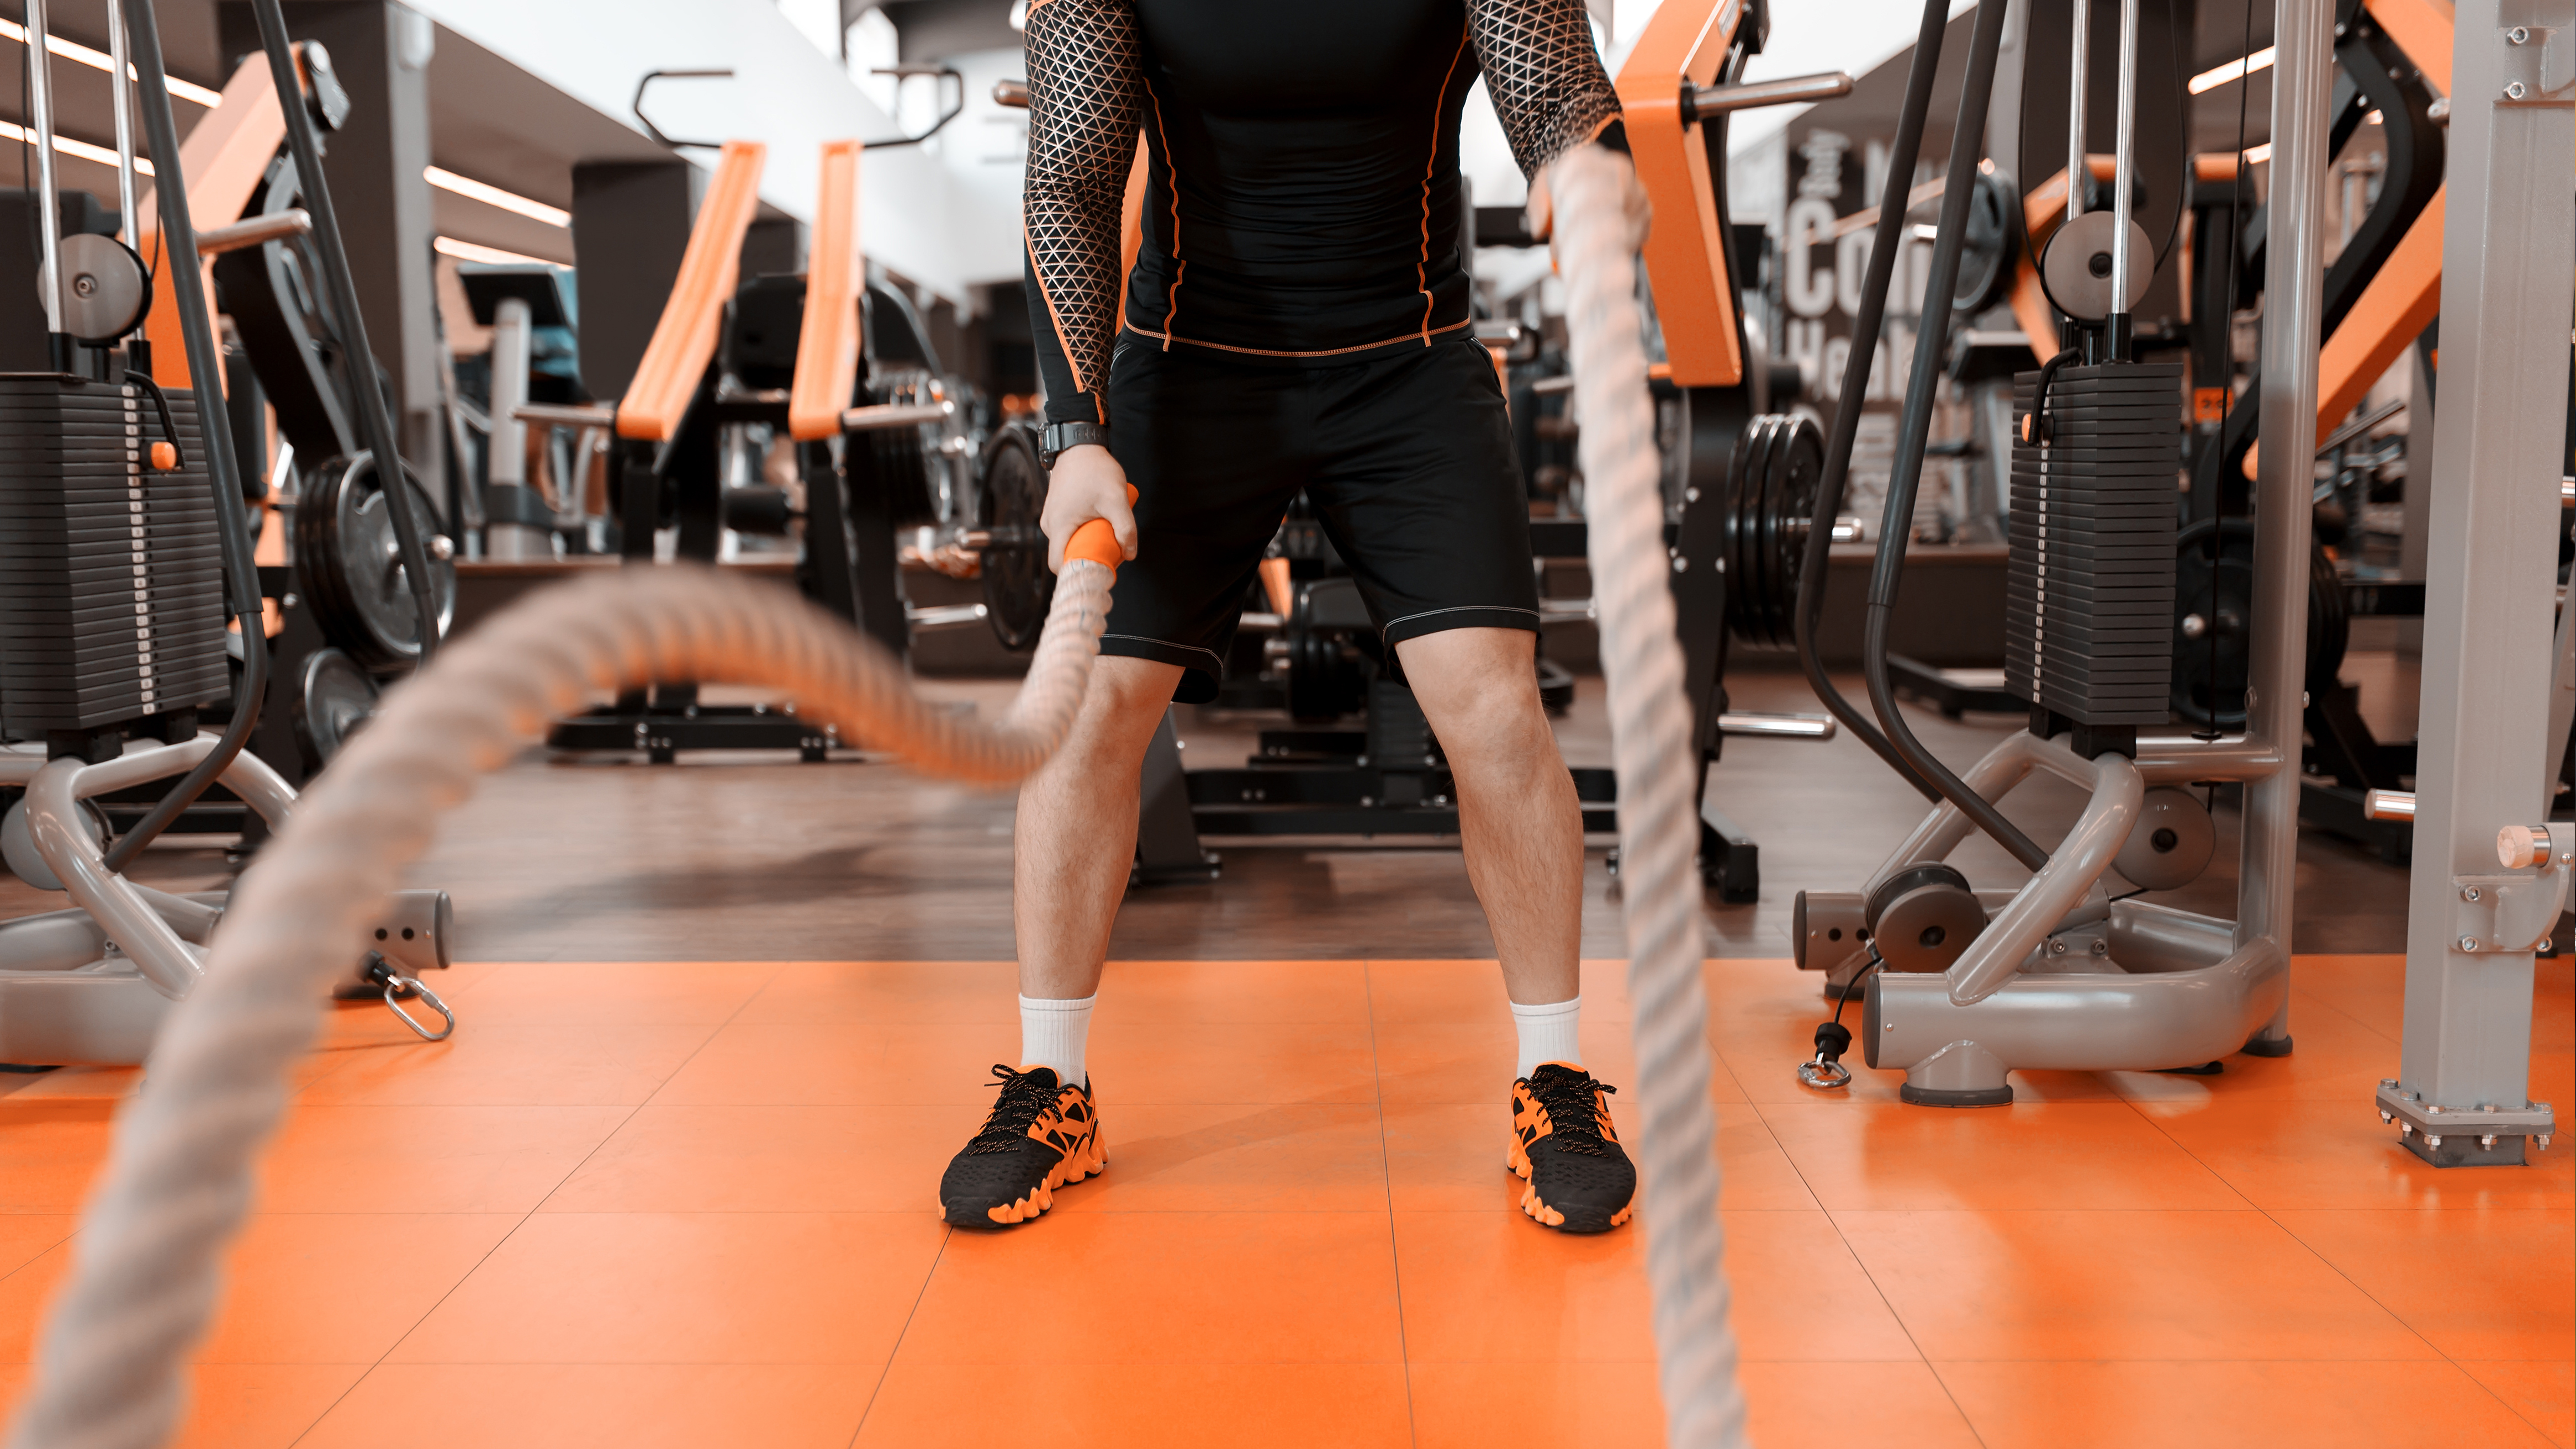 MuscleRopes.com | The Strongest Battle Ropes On the Market